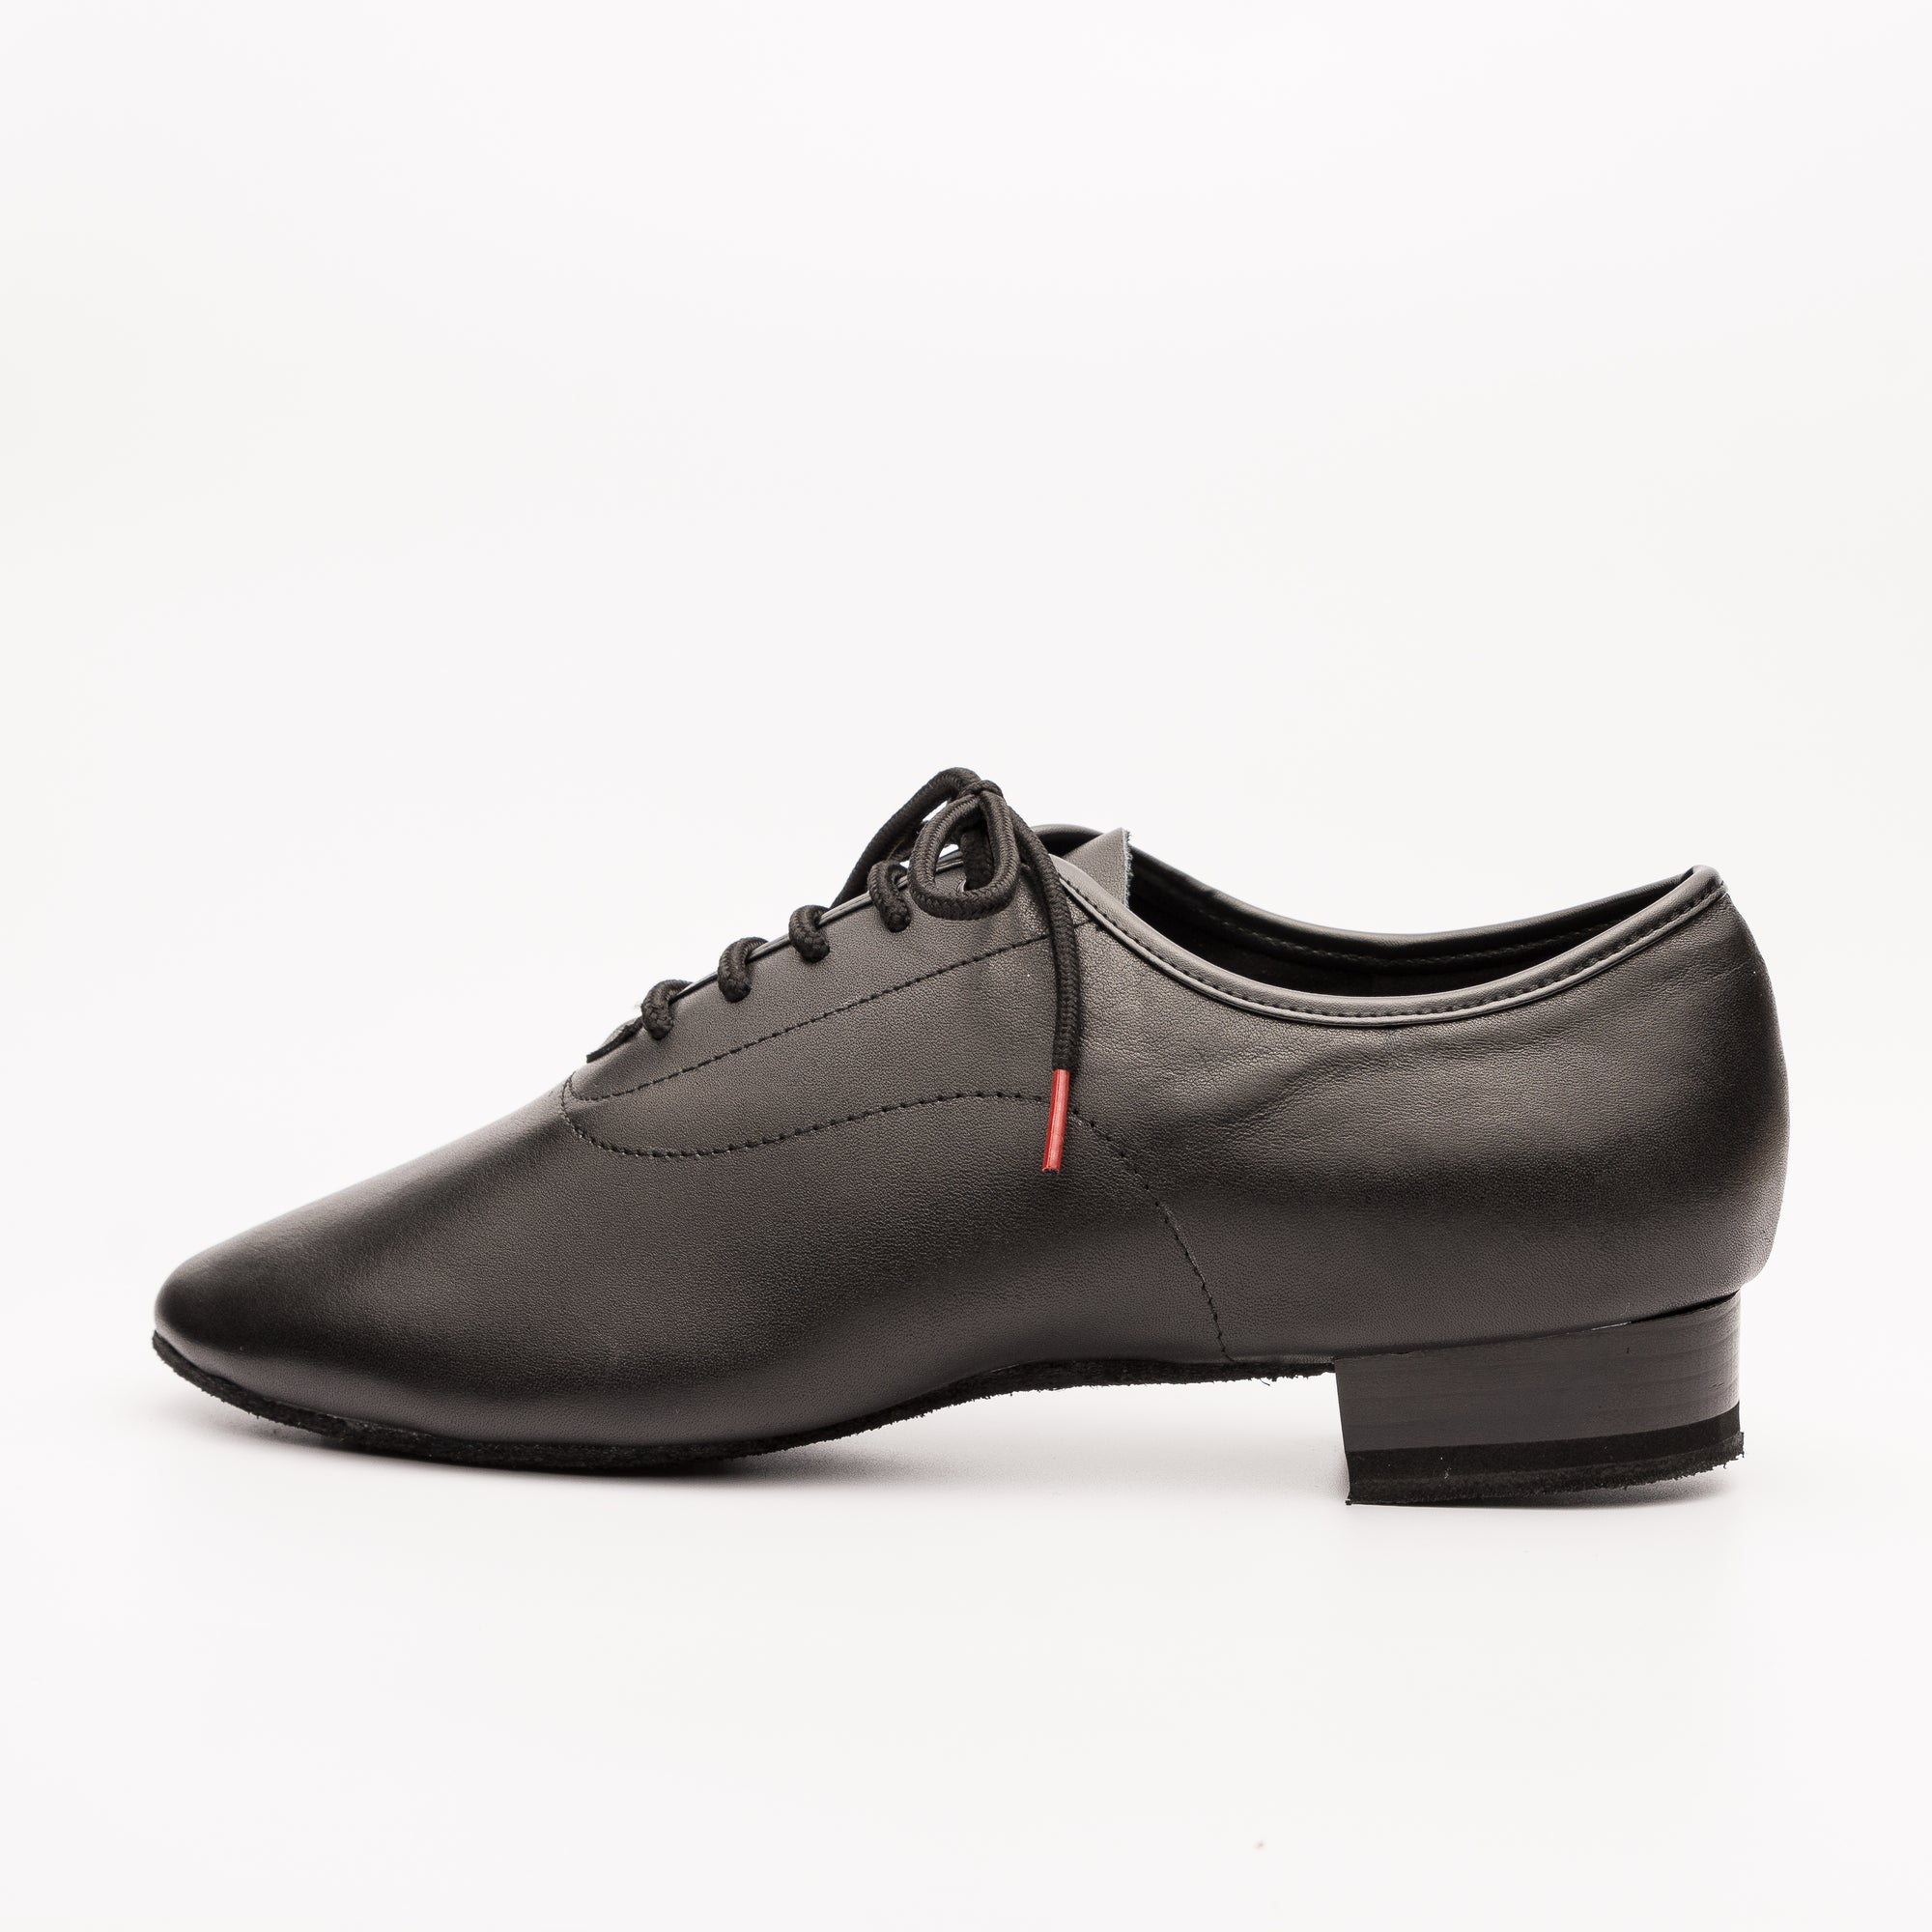 Men's shoes PRO Edition Leather - Low Heel